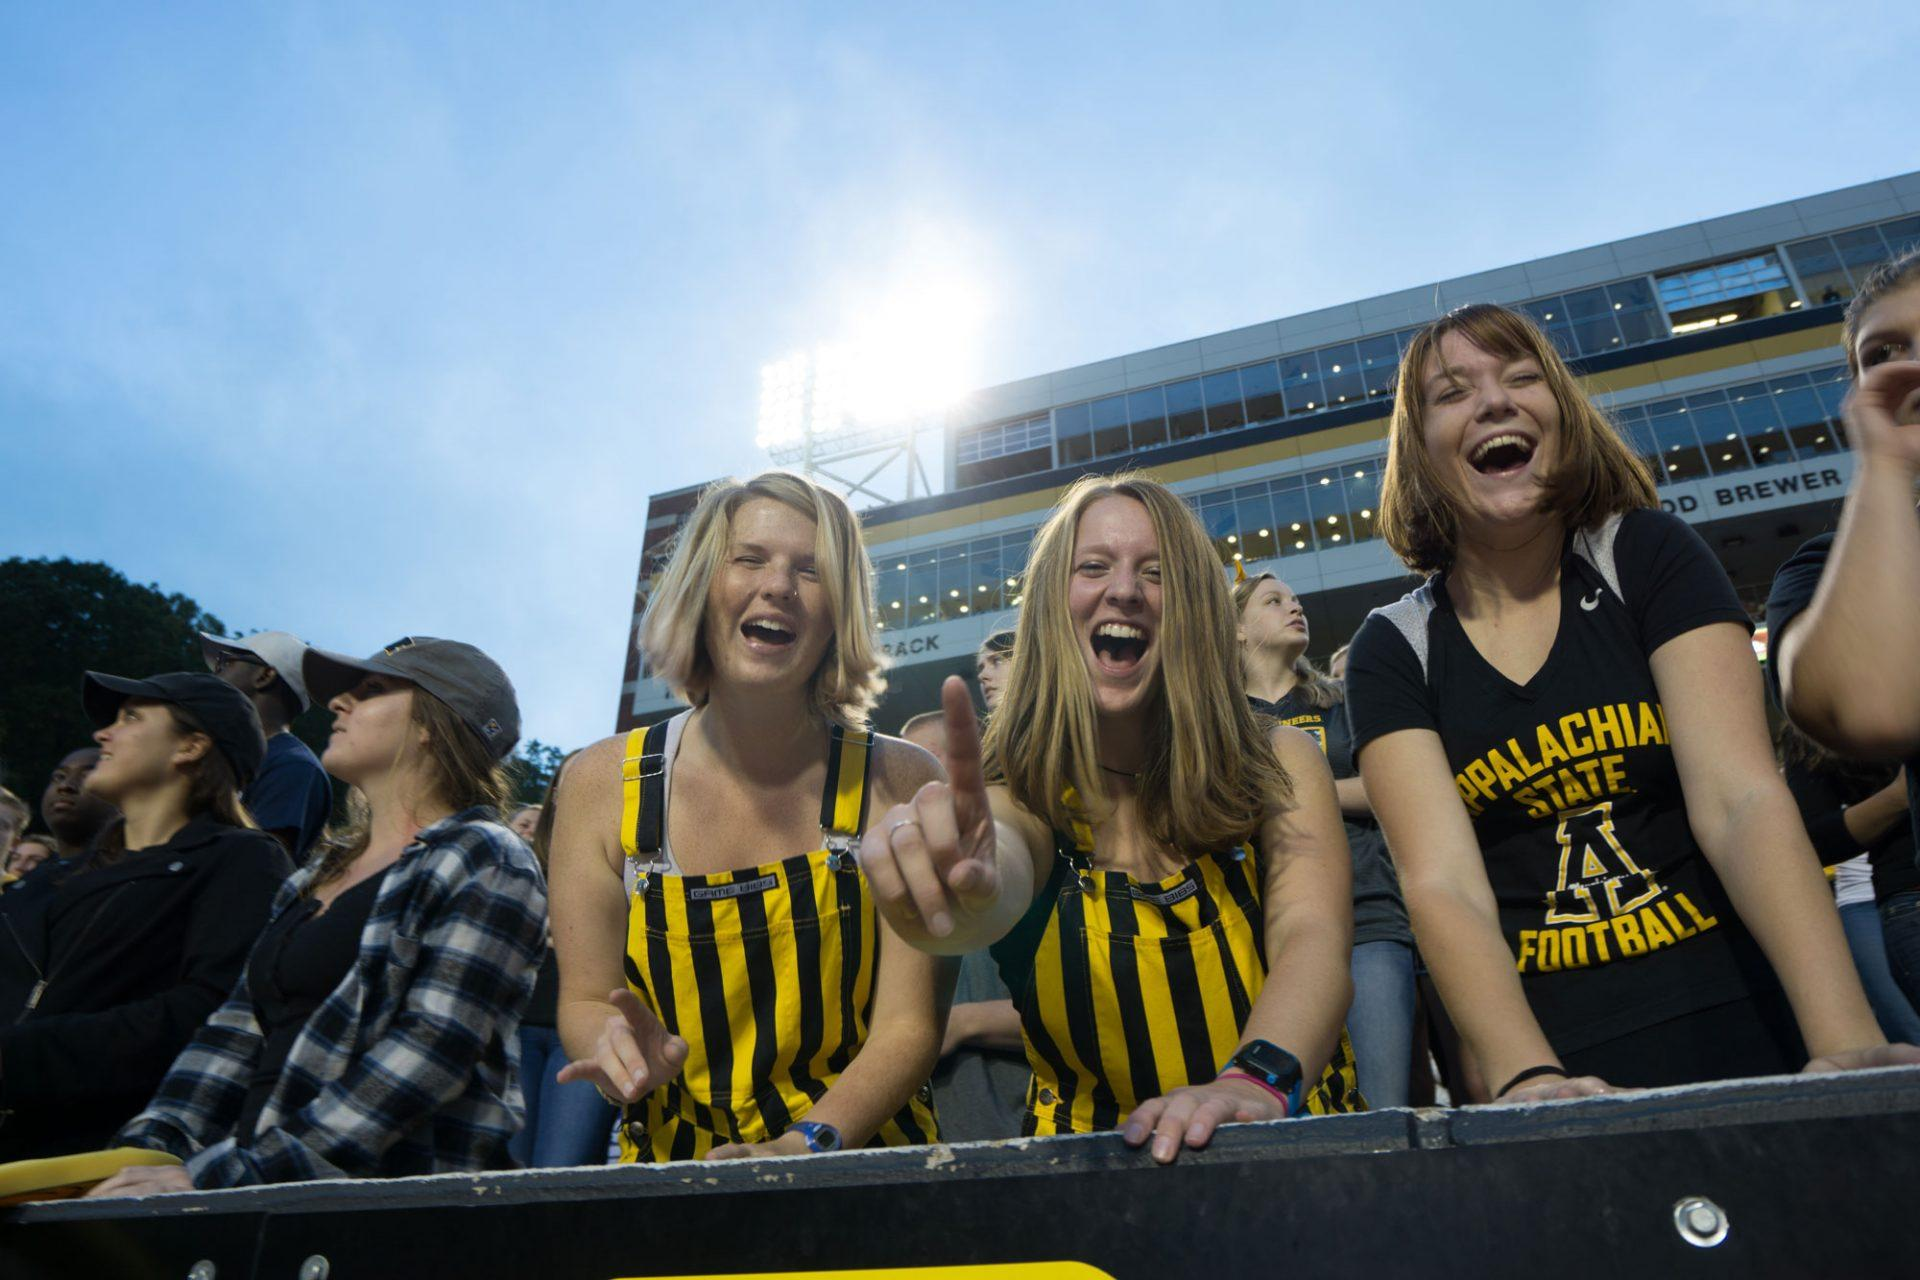 Fans react as the Mountaineers secure the Homecoming game with one last touchdown.